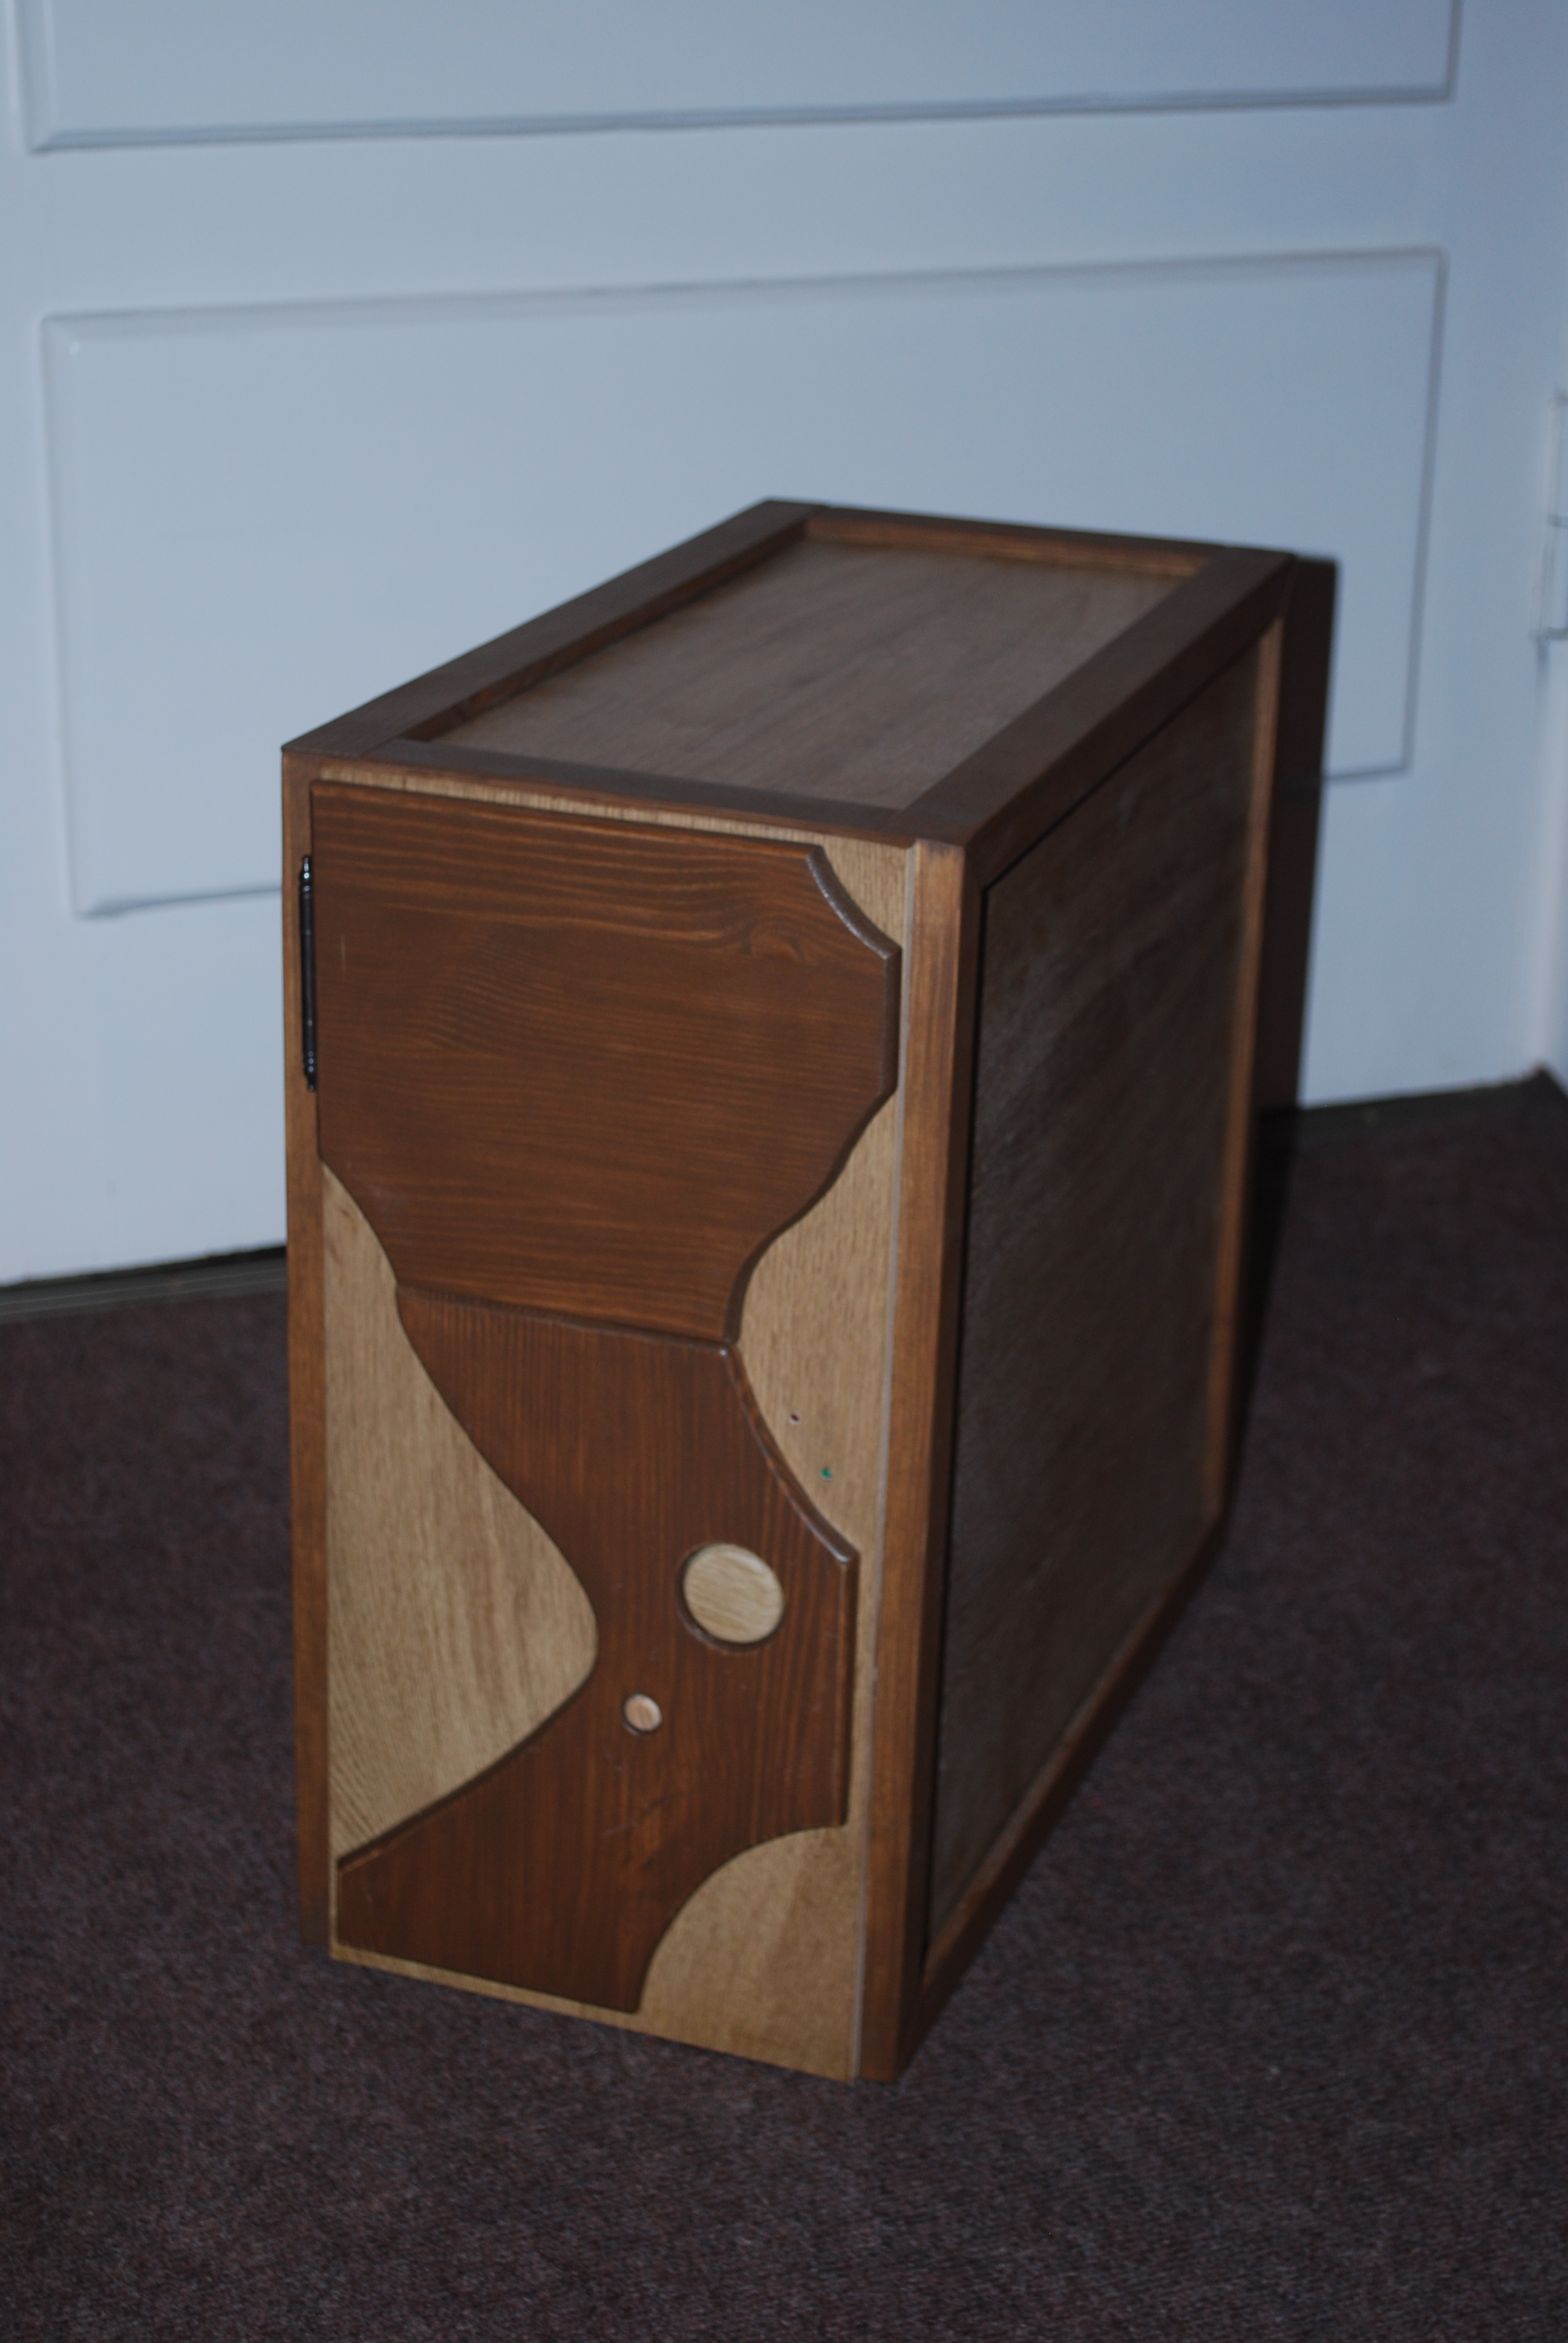 Picture of Wooden Pc Case